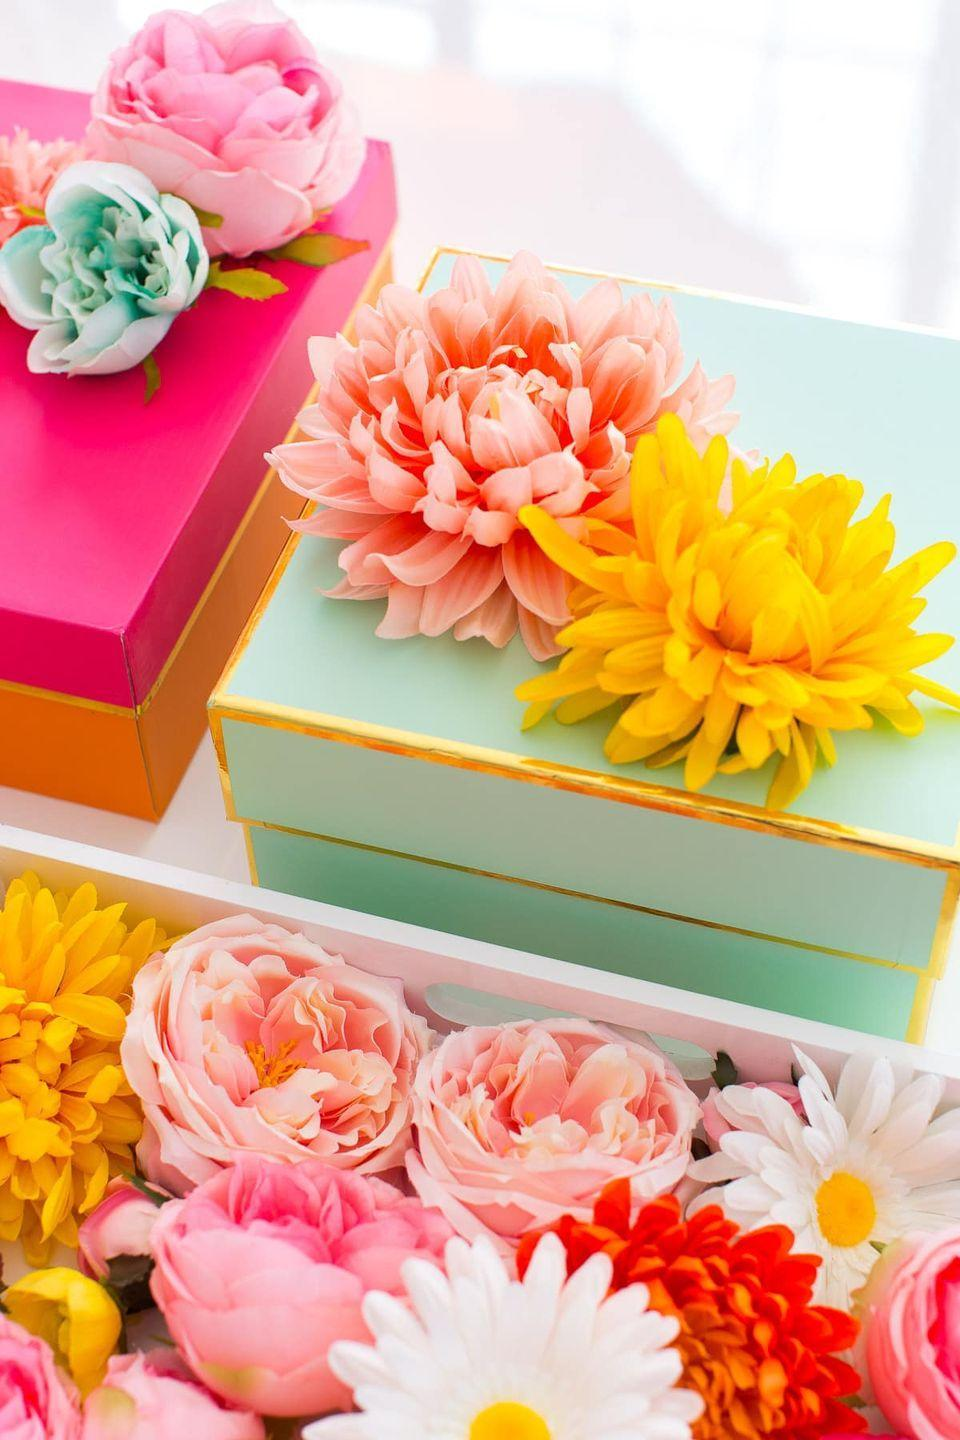 """<p>Out of wrapping paper? Create something just as stunning with a brightly-colored gift box topped with a lush faux flower. </p><p>Get the tutorial at <a href=""""https://sugarandcloth.com/diy-faux-flower-gift-topper-stickers/"""" rel=""""nofollow noopener"""" target=""""_blank"""" data-ylk=""""slk:Sugar and Cloth"""" class=""""link rapid-noclick-resp"""">Sugar and Cloth</a>.</p><p><a class=""""link rapid-noclick-resp"""" href=""""https://www.amazon.com/CQURE-Artificial-Hydrangea-Decoration-Champagne/dp/B07GZLGQ6T?tag=syn-yahoo-20&ascsubtag=%5Bartid%7C10072.g.34015639%5Bsrc%7Cyahoo-us"""" rel=""""nofollow noopener"""" target=""""_blank"""" data-ylk=""""slk:SHOP FAUX FLOWERS"""">SHOP FAUX FLOWERS</a></p>"""